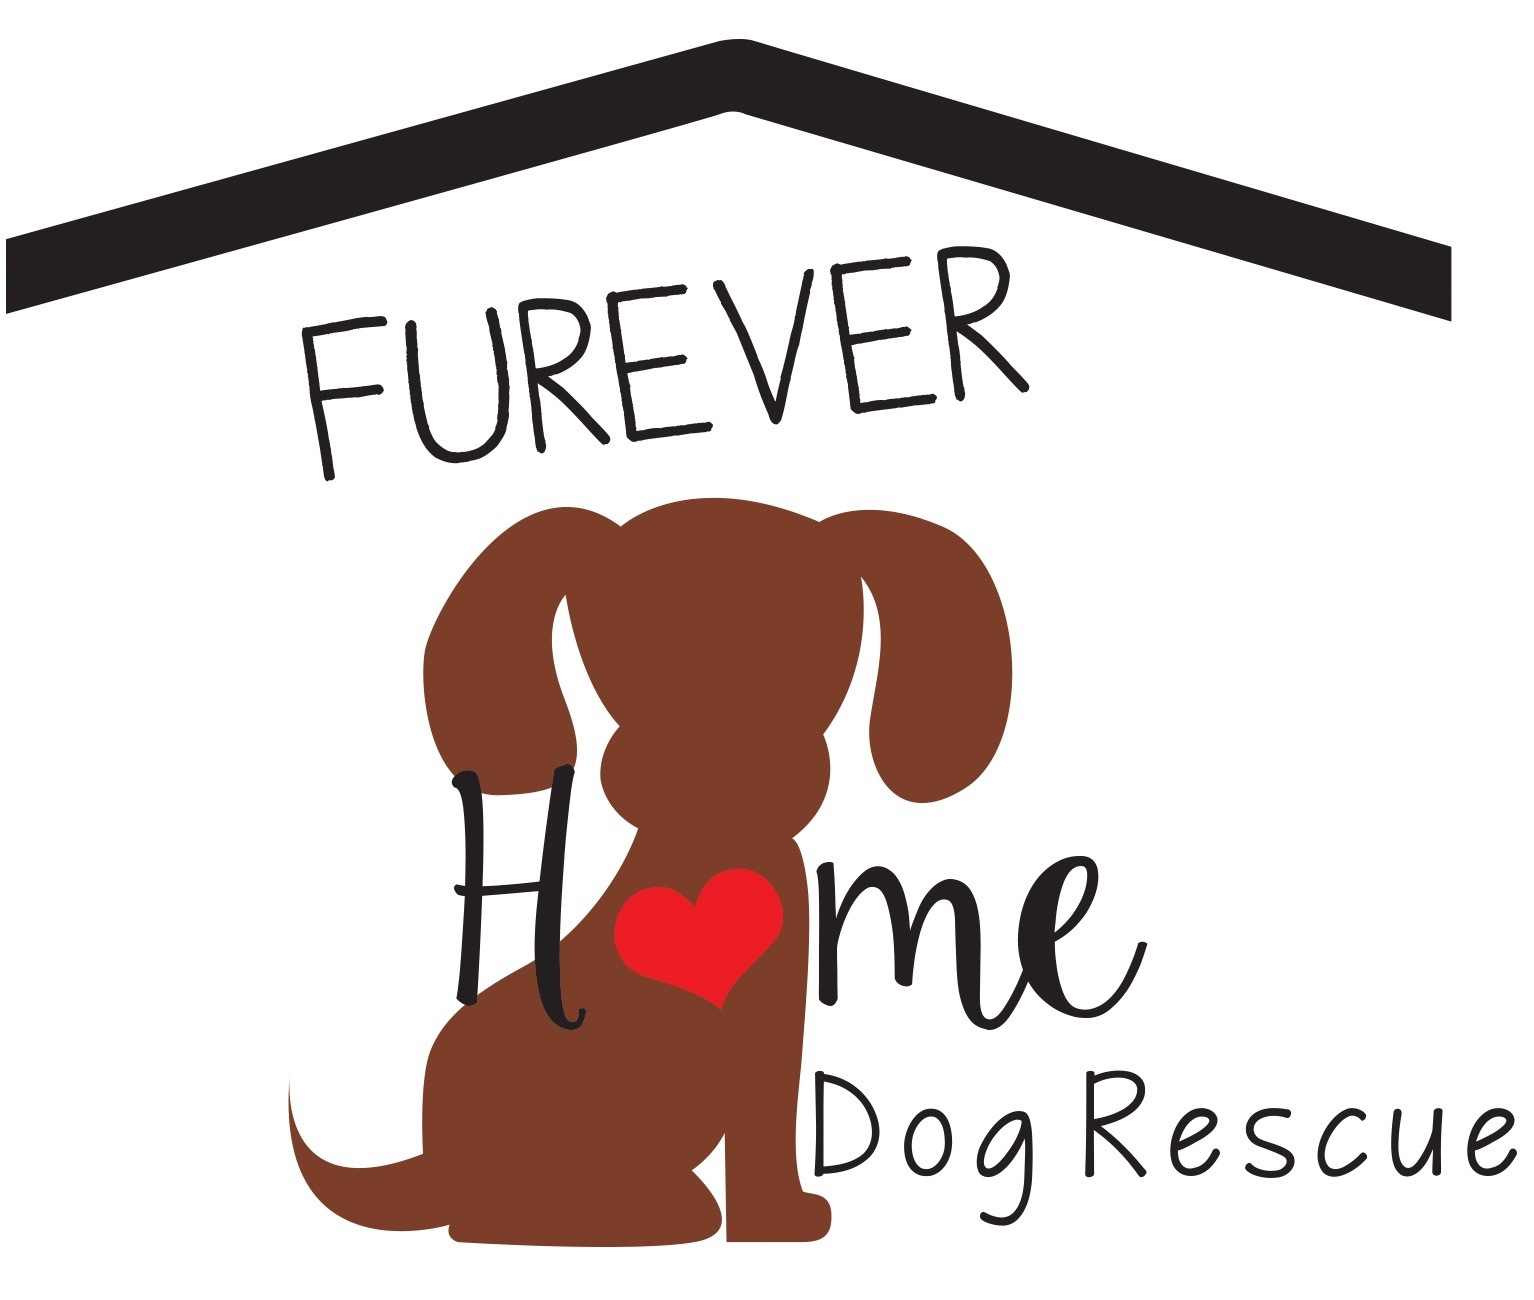 Pets for adoption at furever home dog rescue in randolph nj close this dialog furever home dog rescue xflitez Gallery